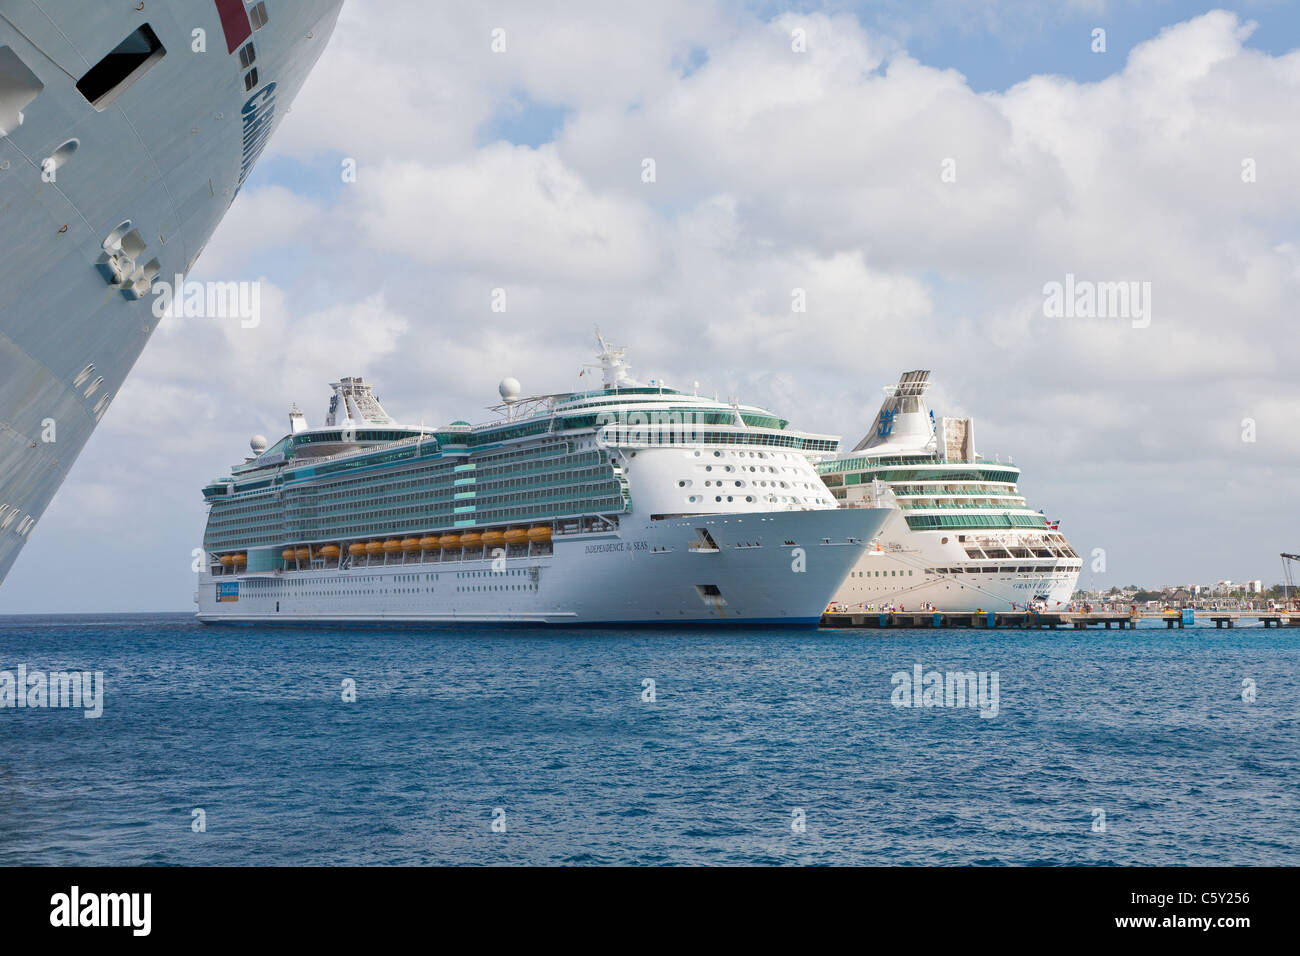 Cruise ships docked in the port at Cozumel, Mexico in the Caribbean Sea - Stock Image